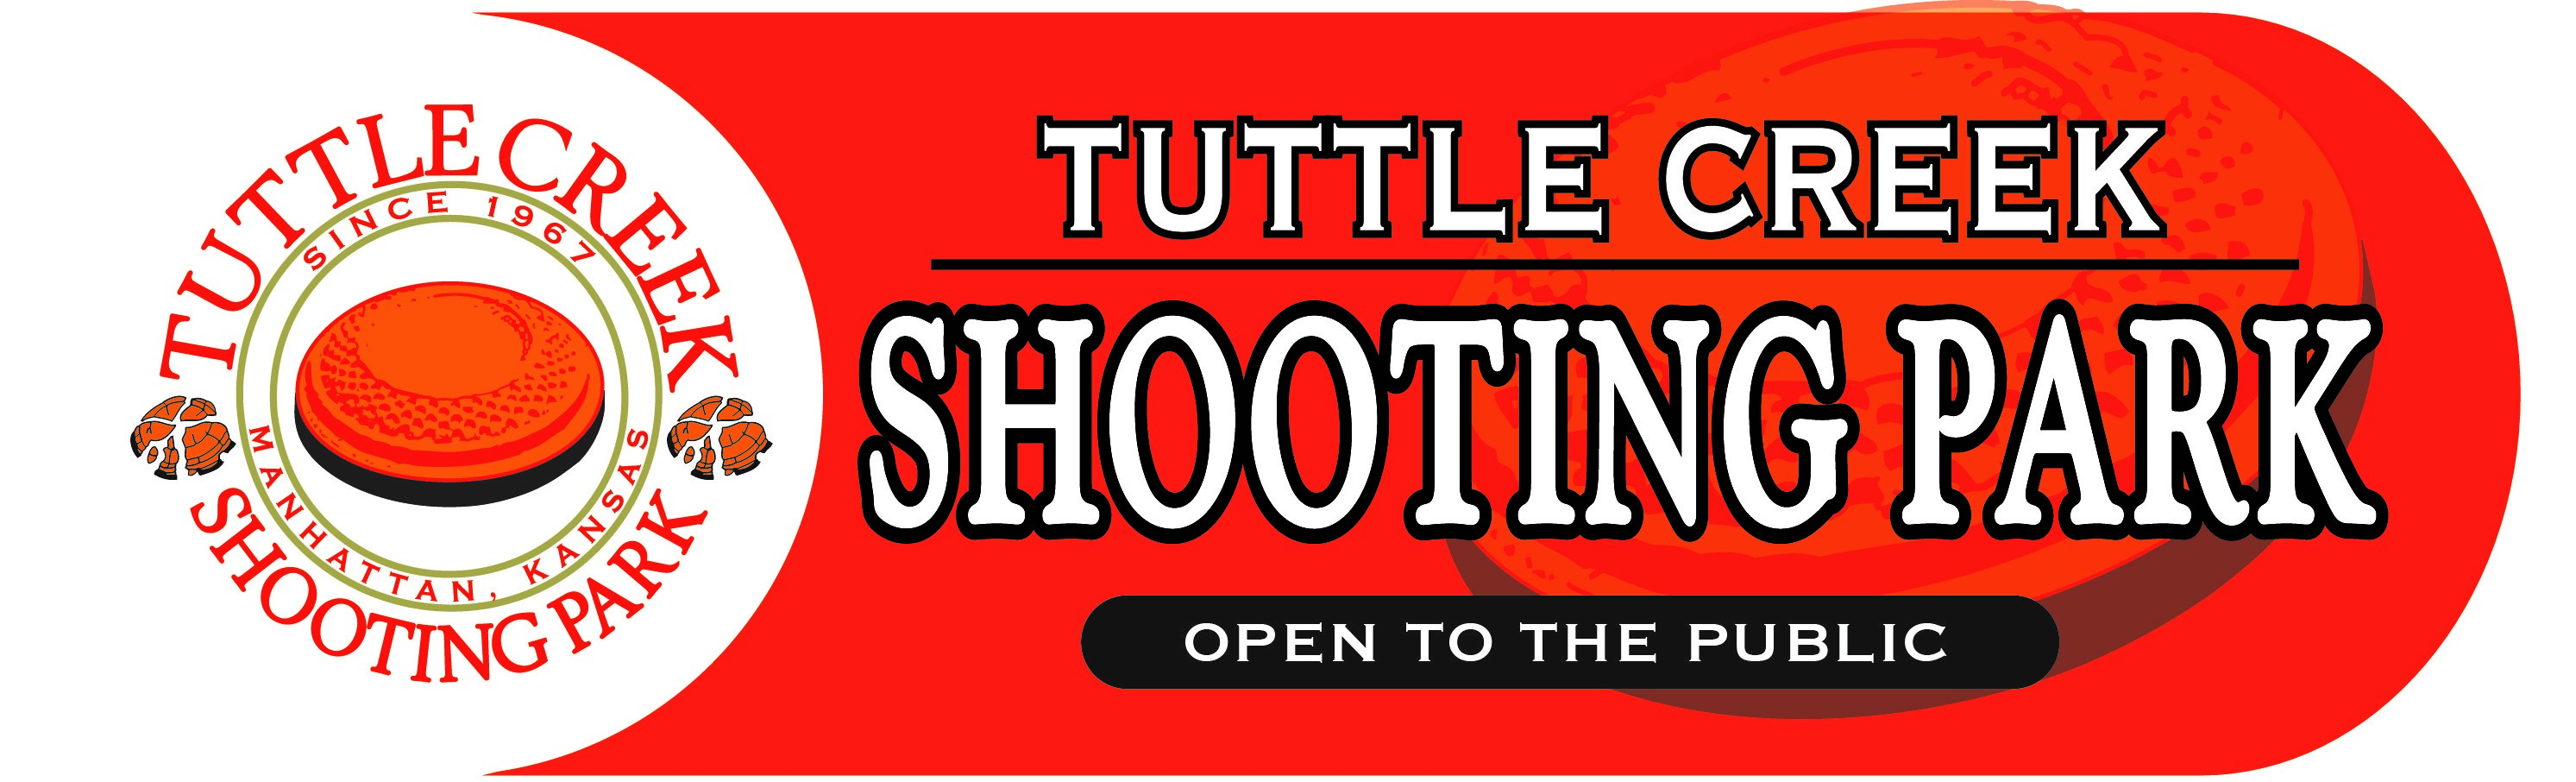 Tuttle Creek Shooting Park